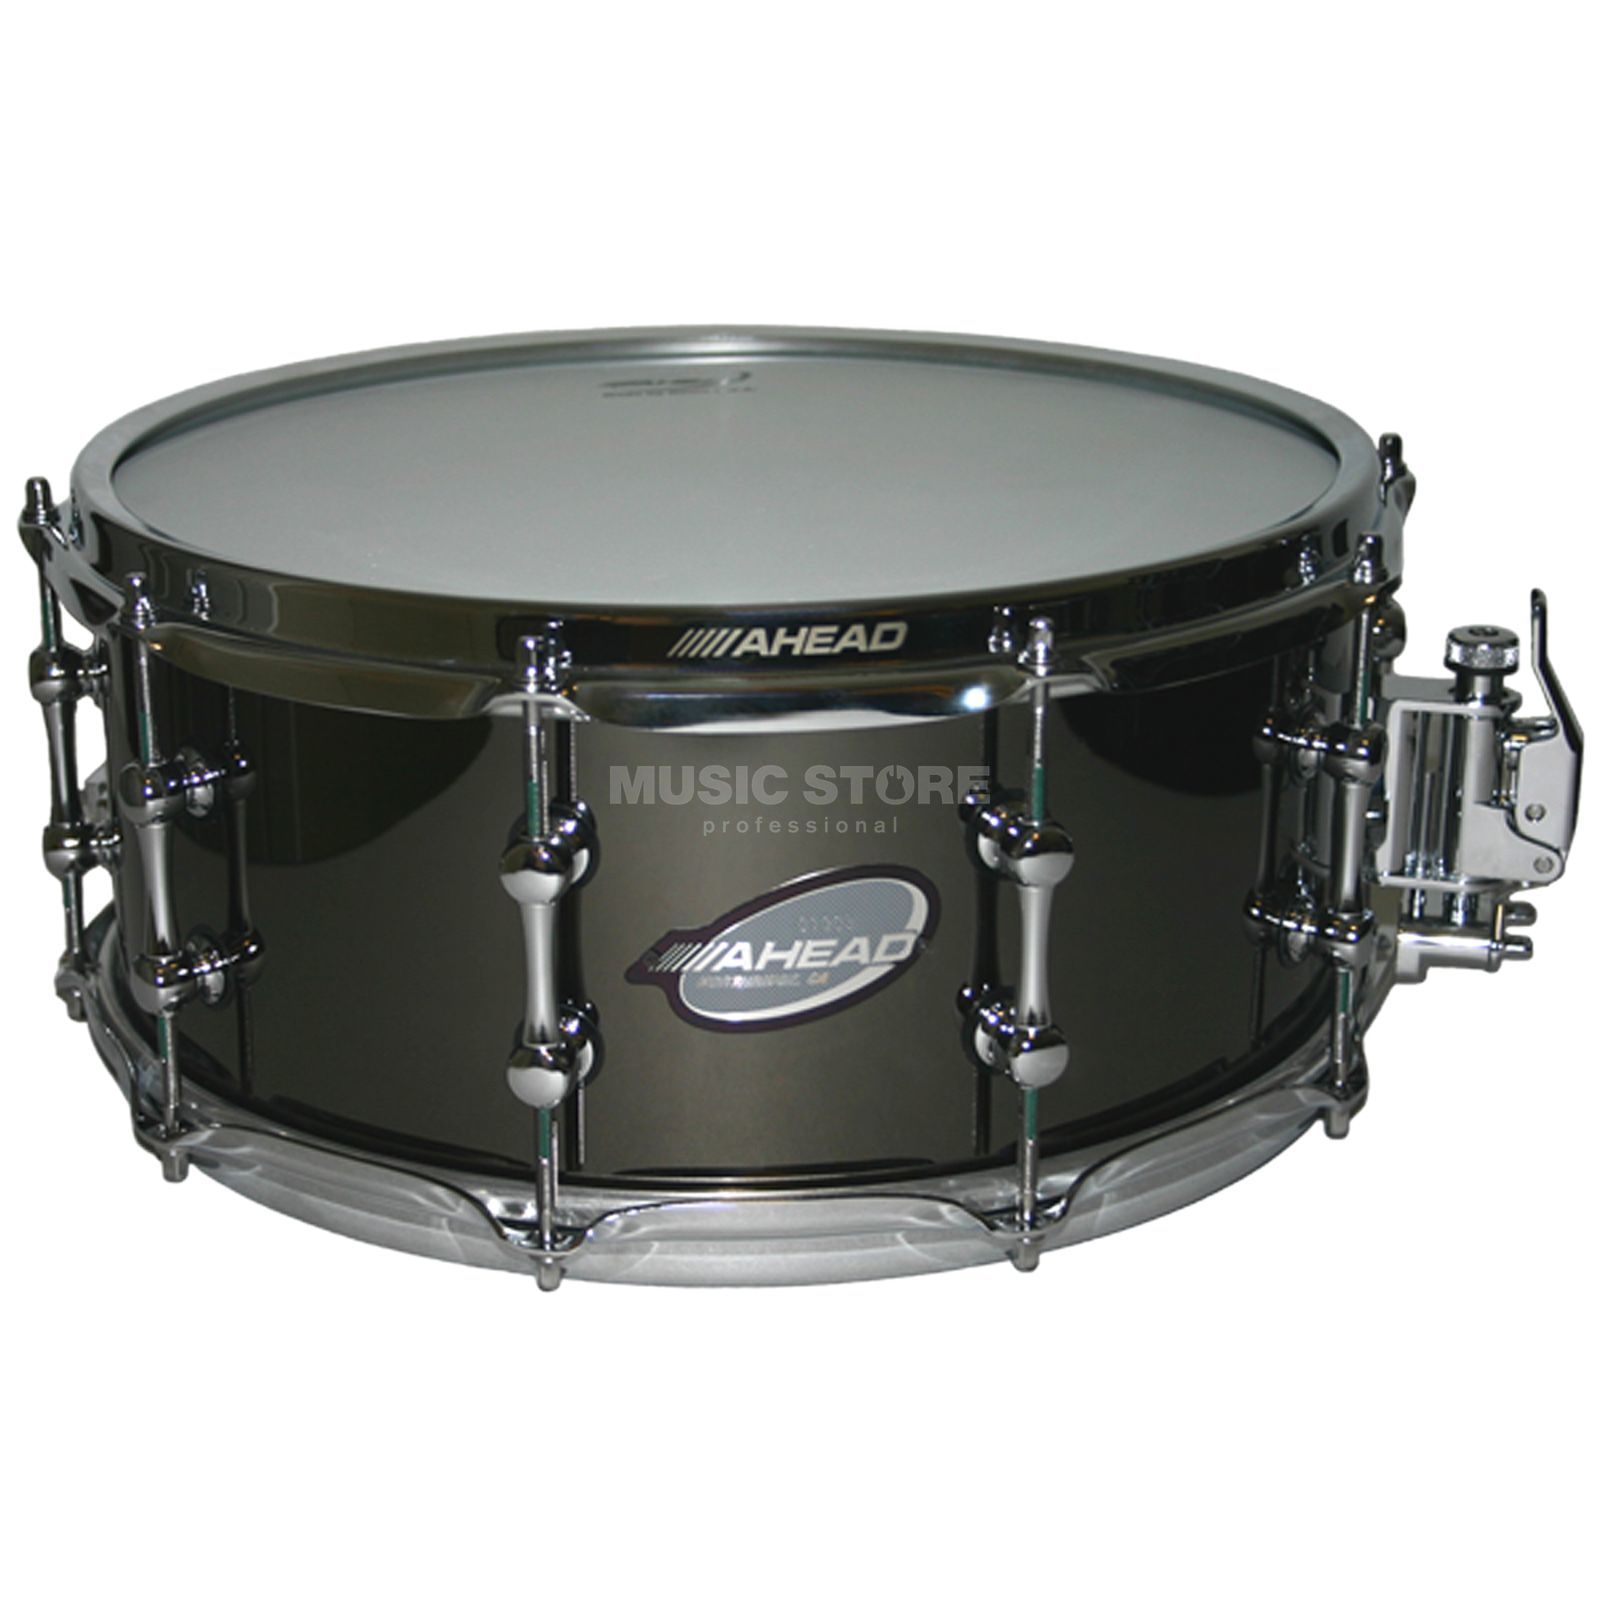 "Ahead Sticks Black on Brass Snare 13""x6"", AS613 Produktbild"